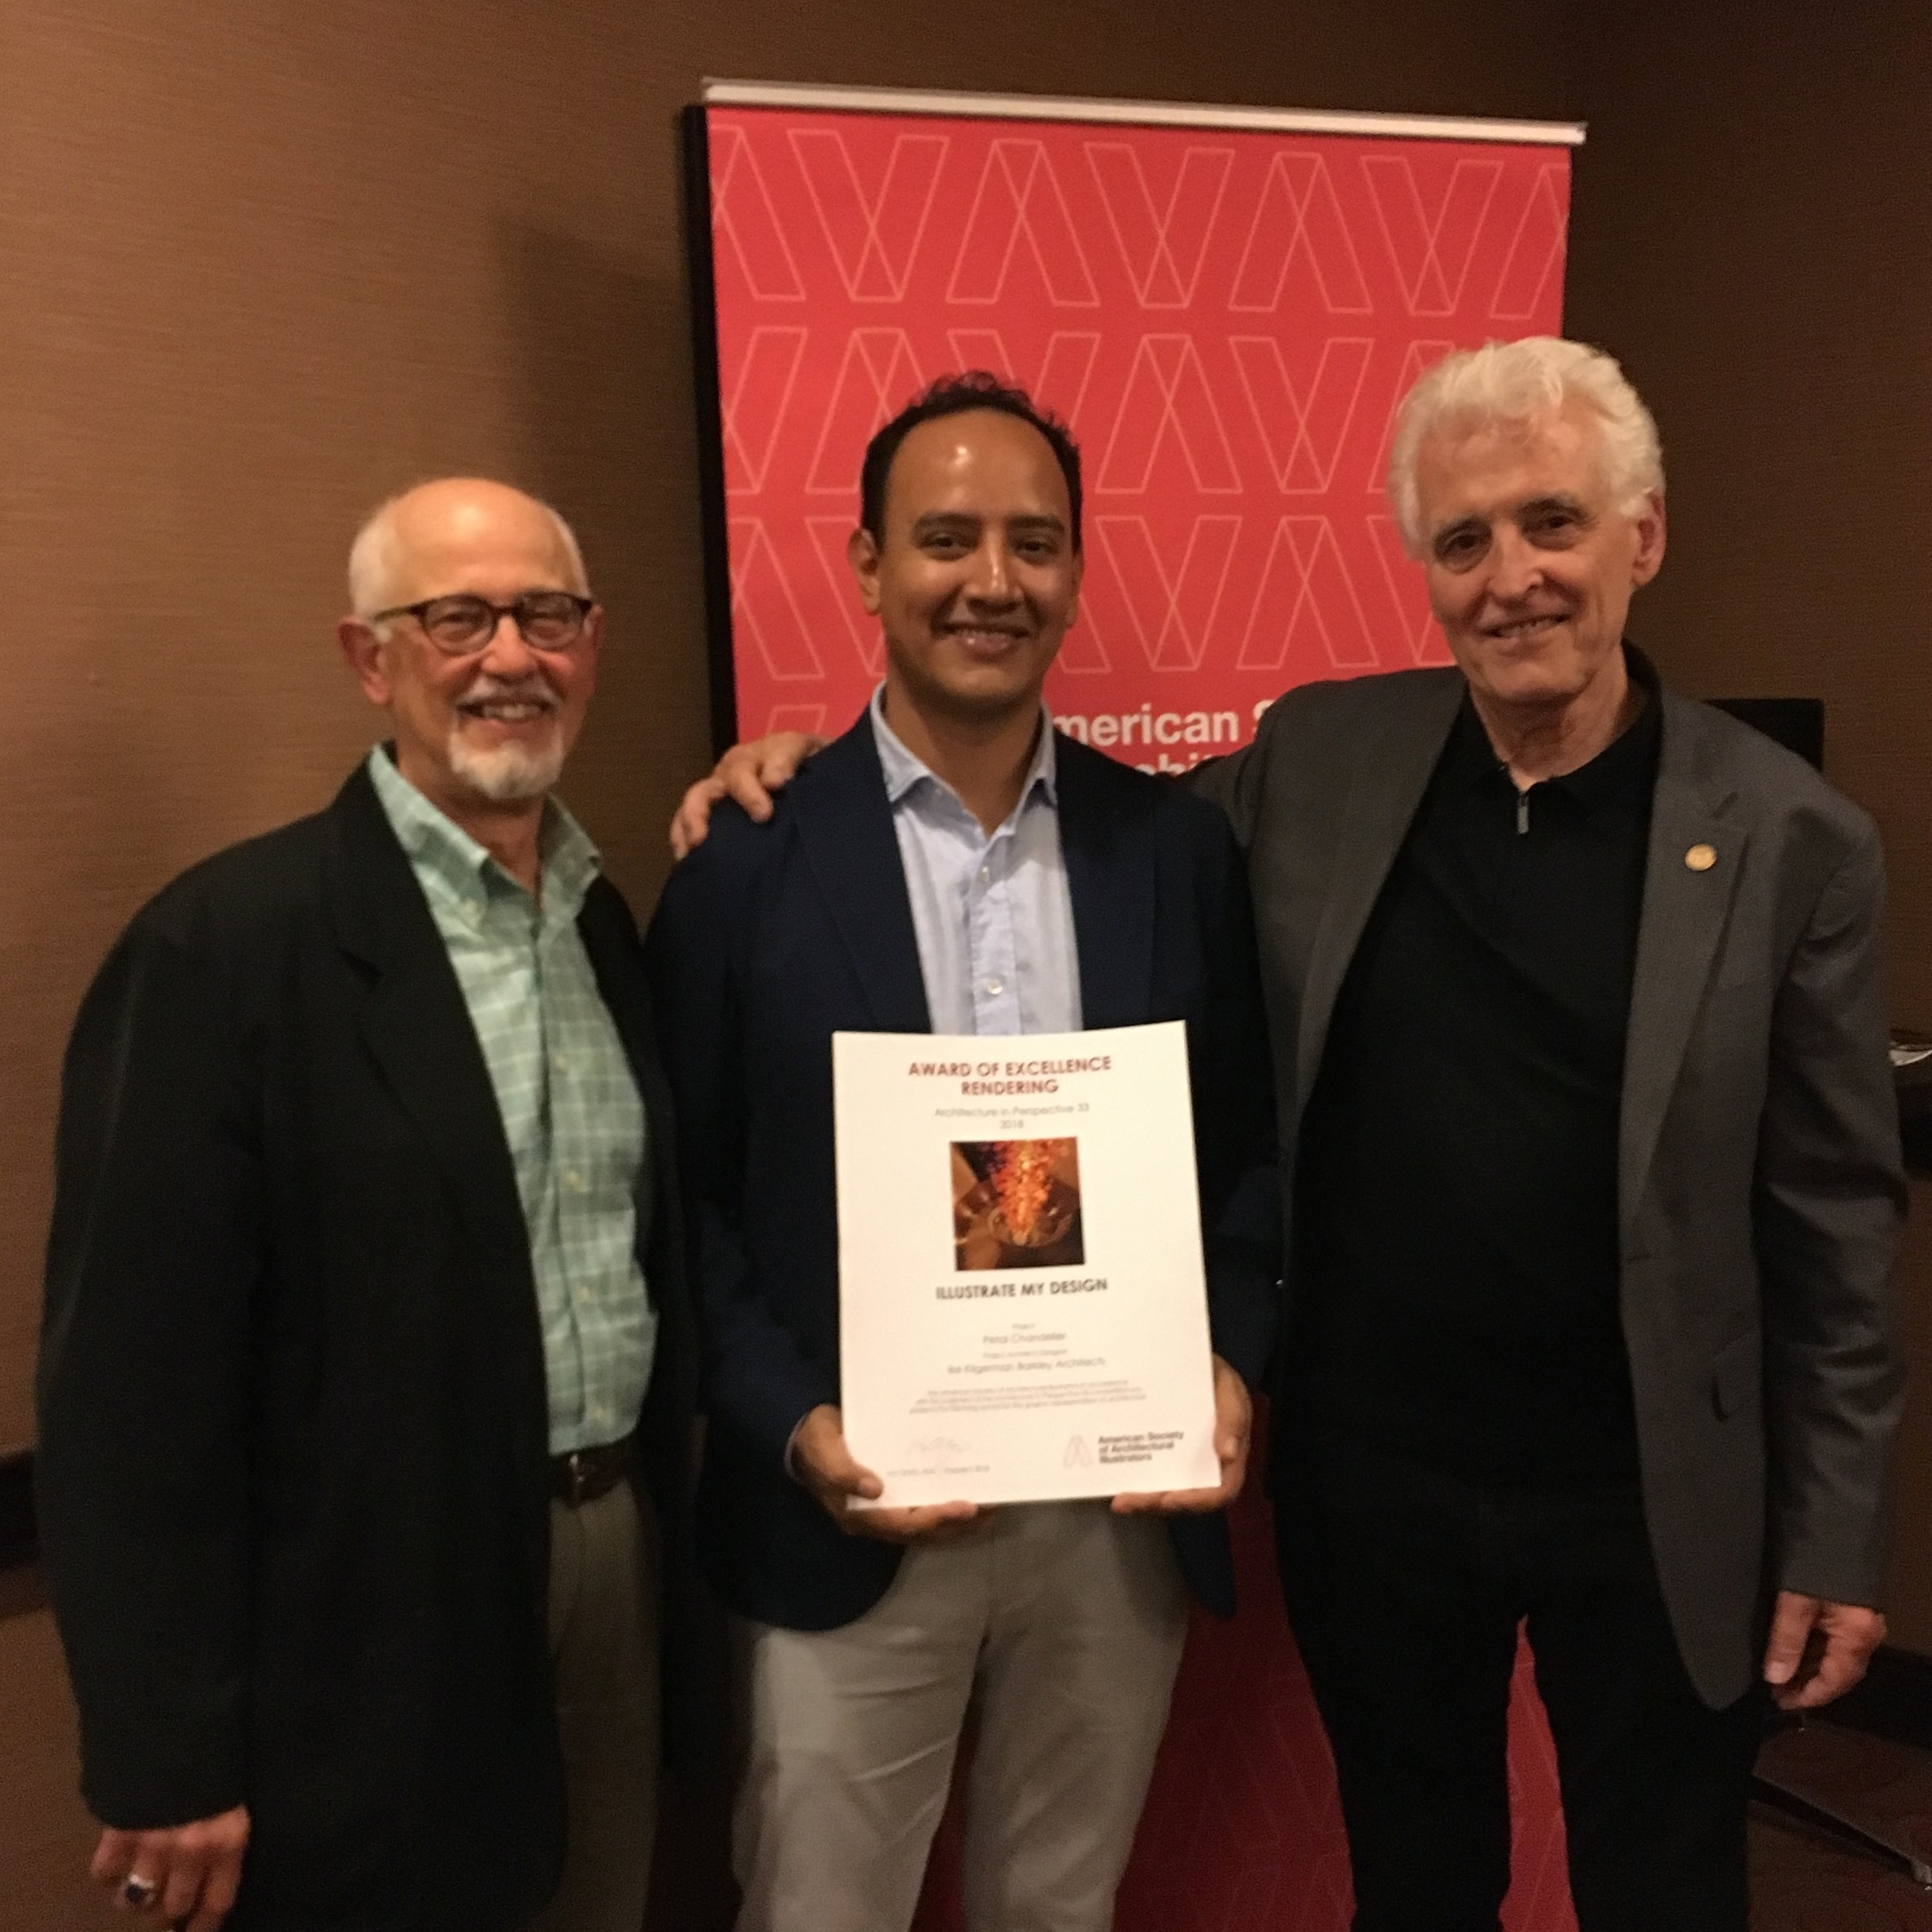 """Frank Costantino and Gordon Grice presenting Daniel Zeballos of Illustrate My Design (IMD) the Award of Excellence in Rendering at the 2018 """"Architecture in Perspective"""" conference hosted by the ASAI."""